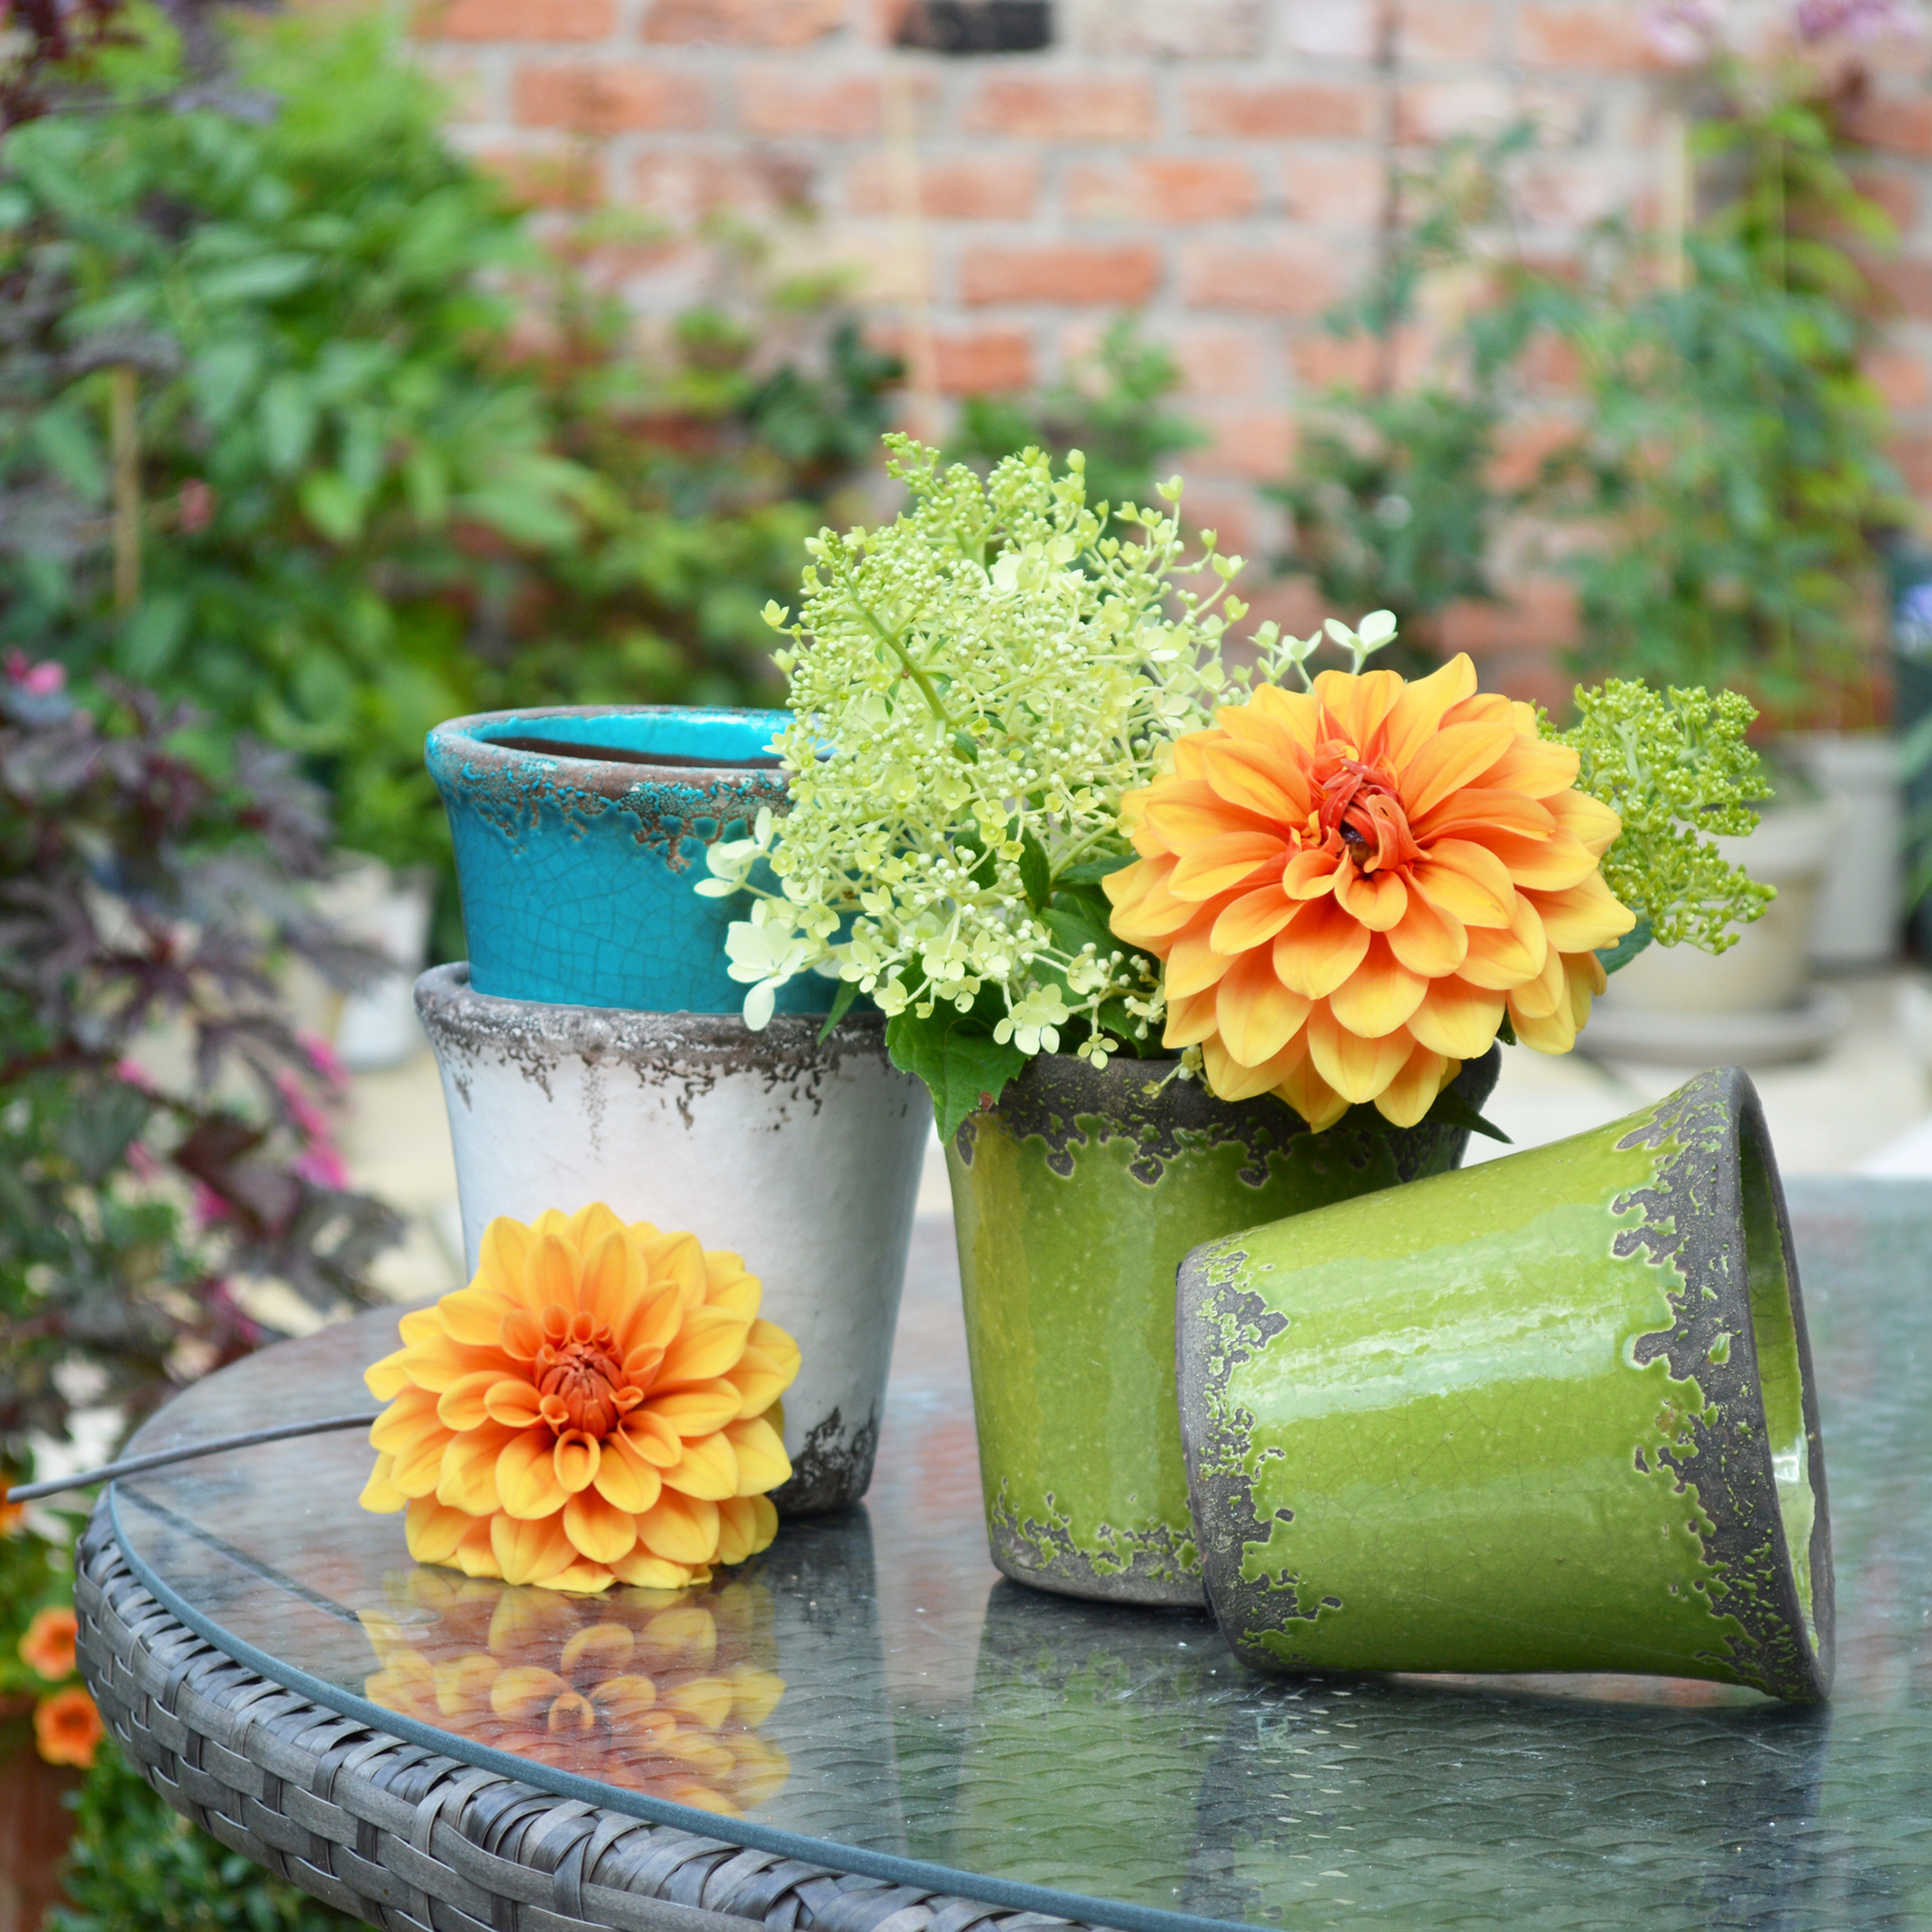 MiaFleur- Rustic Plant Pots £11.95 each by Nordal (available in 5 colours) (3)